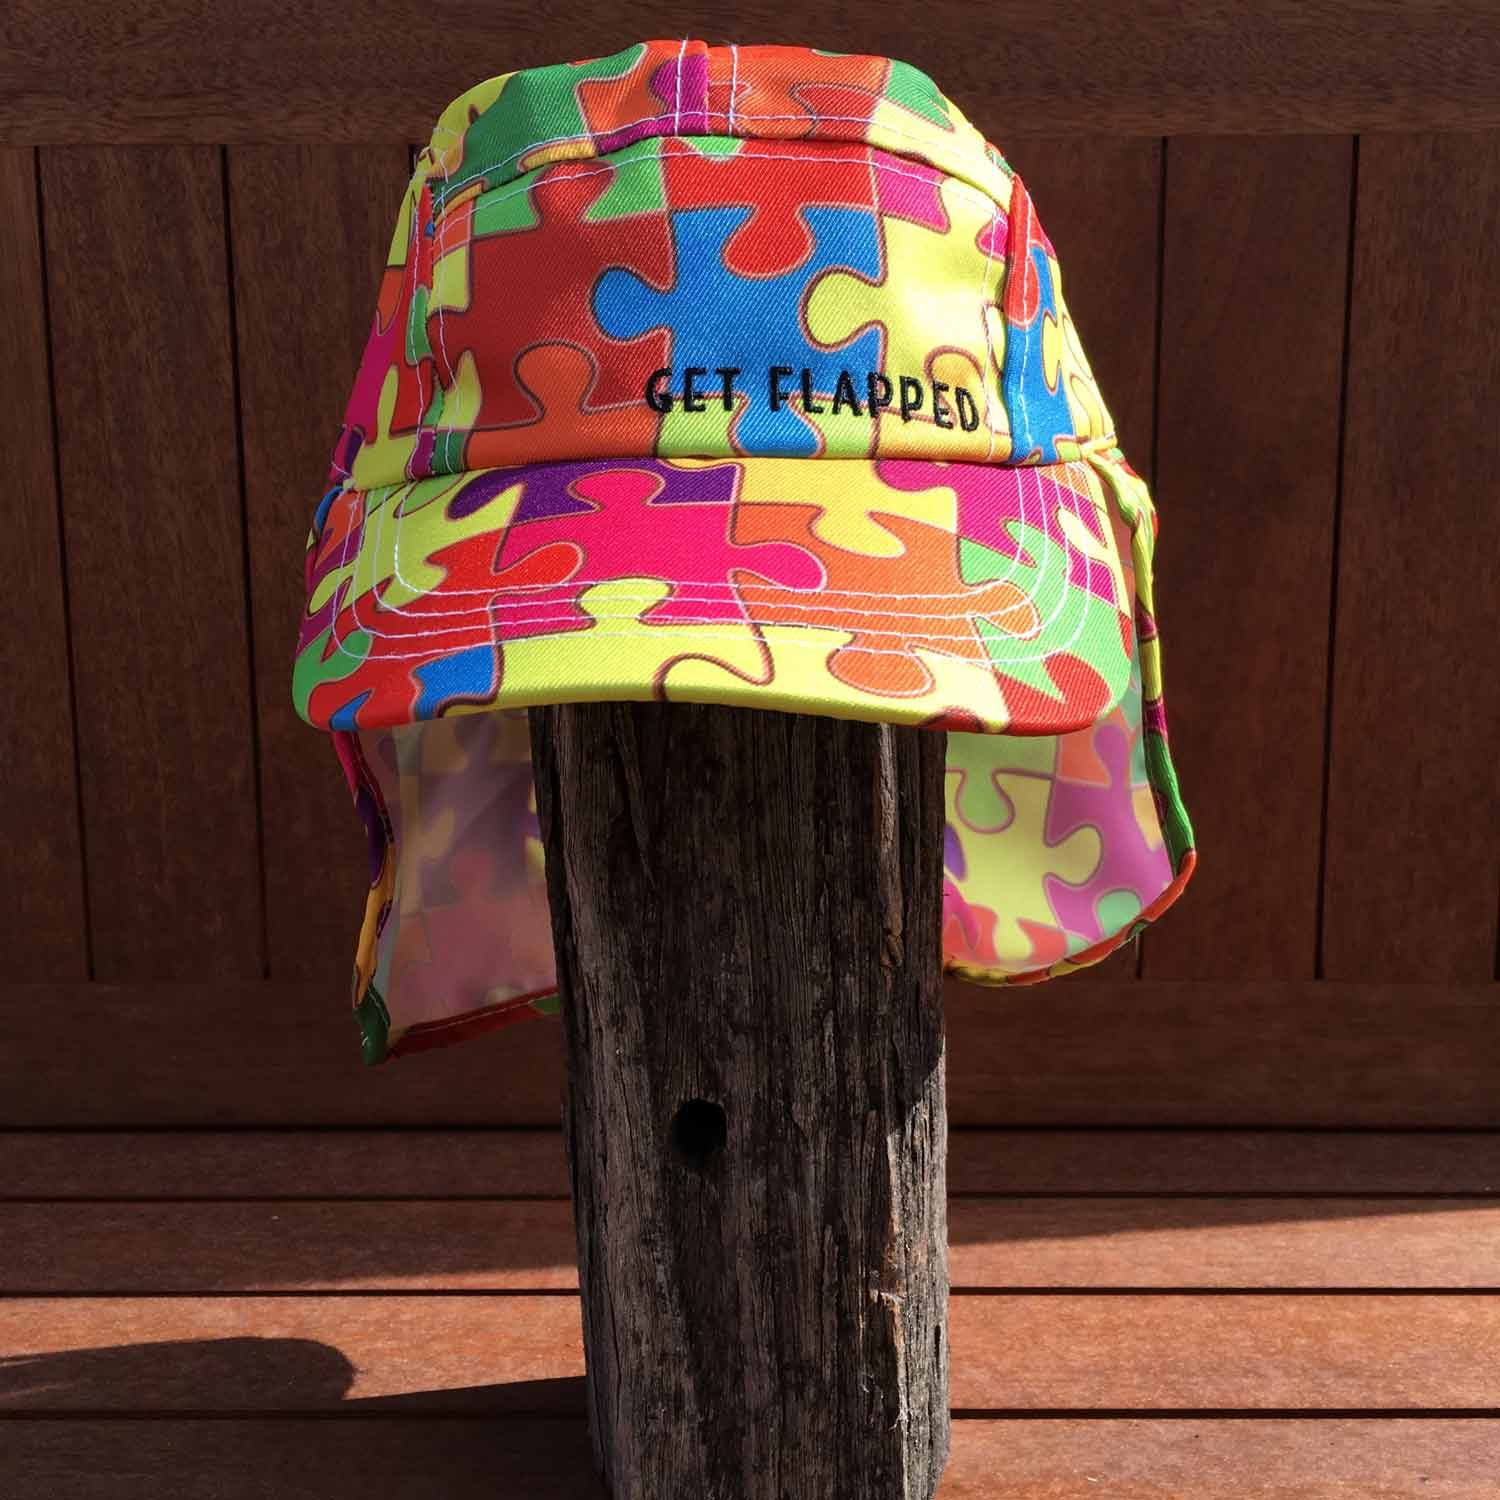 Puzzled-puzzle pieces patterned childrens legionnaires hat UPF50+ get flapped-front